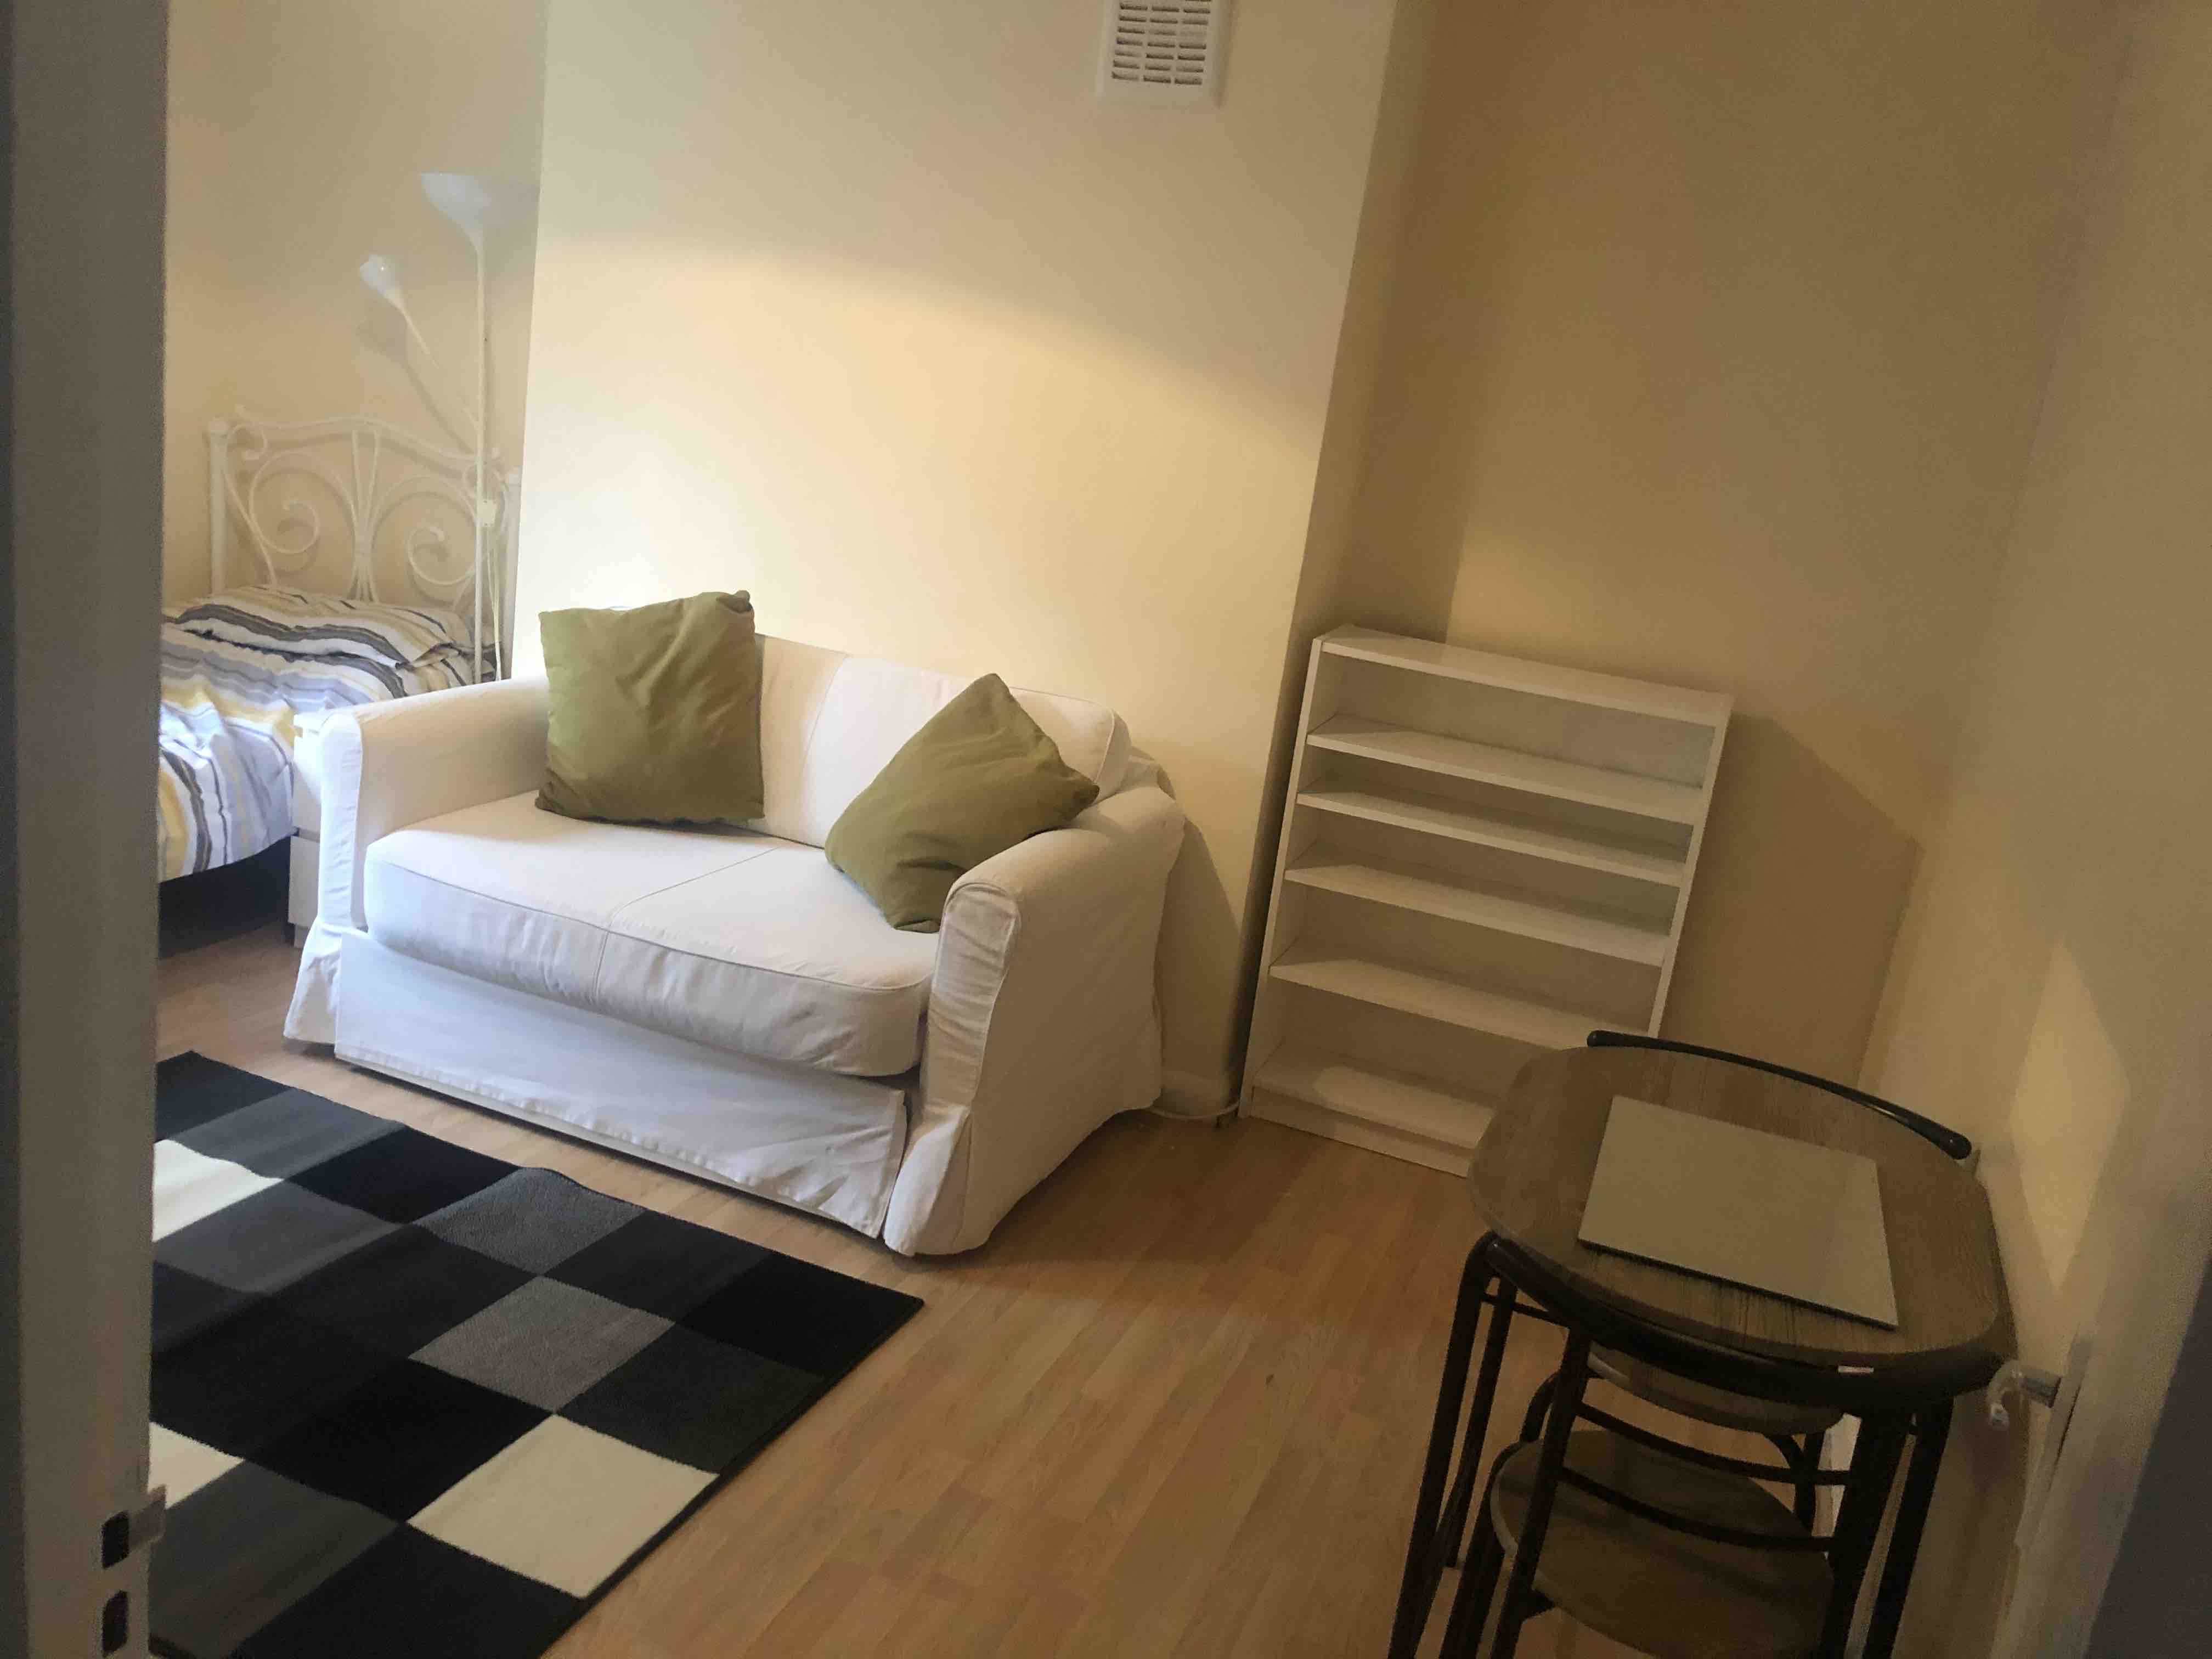 1 room in Vassall, London, SE59HY RoomsLocal image